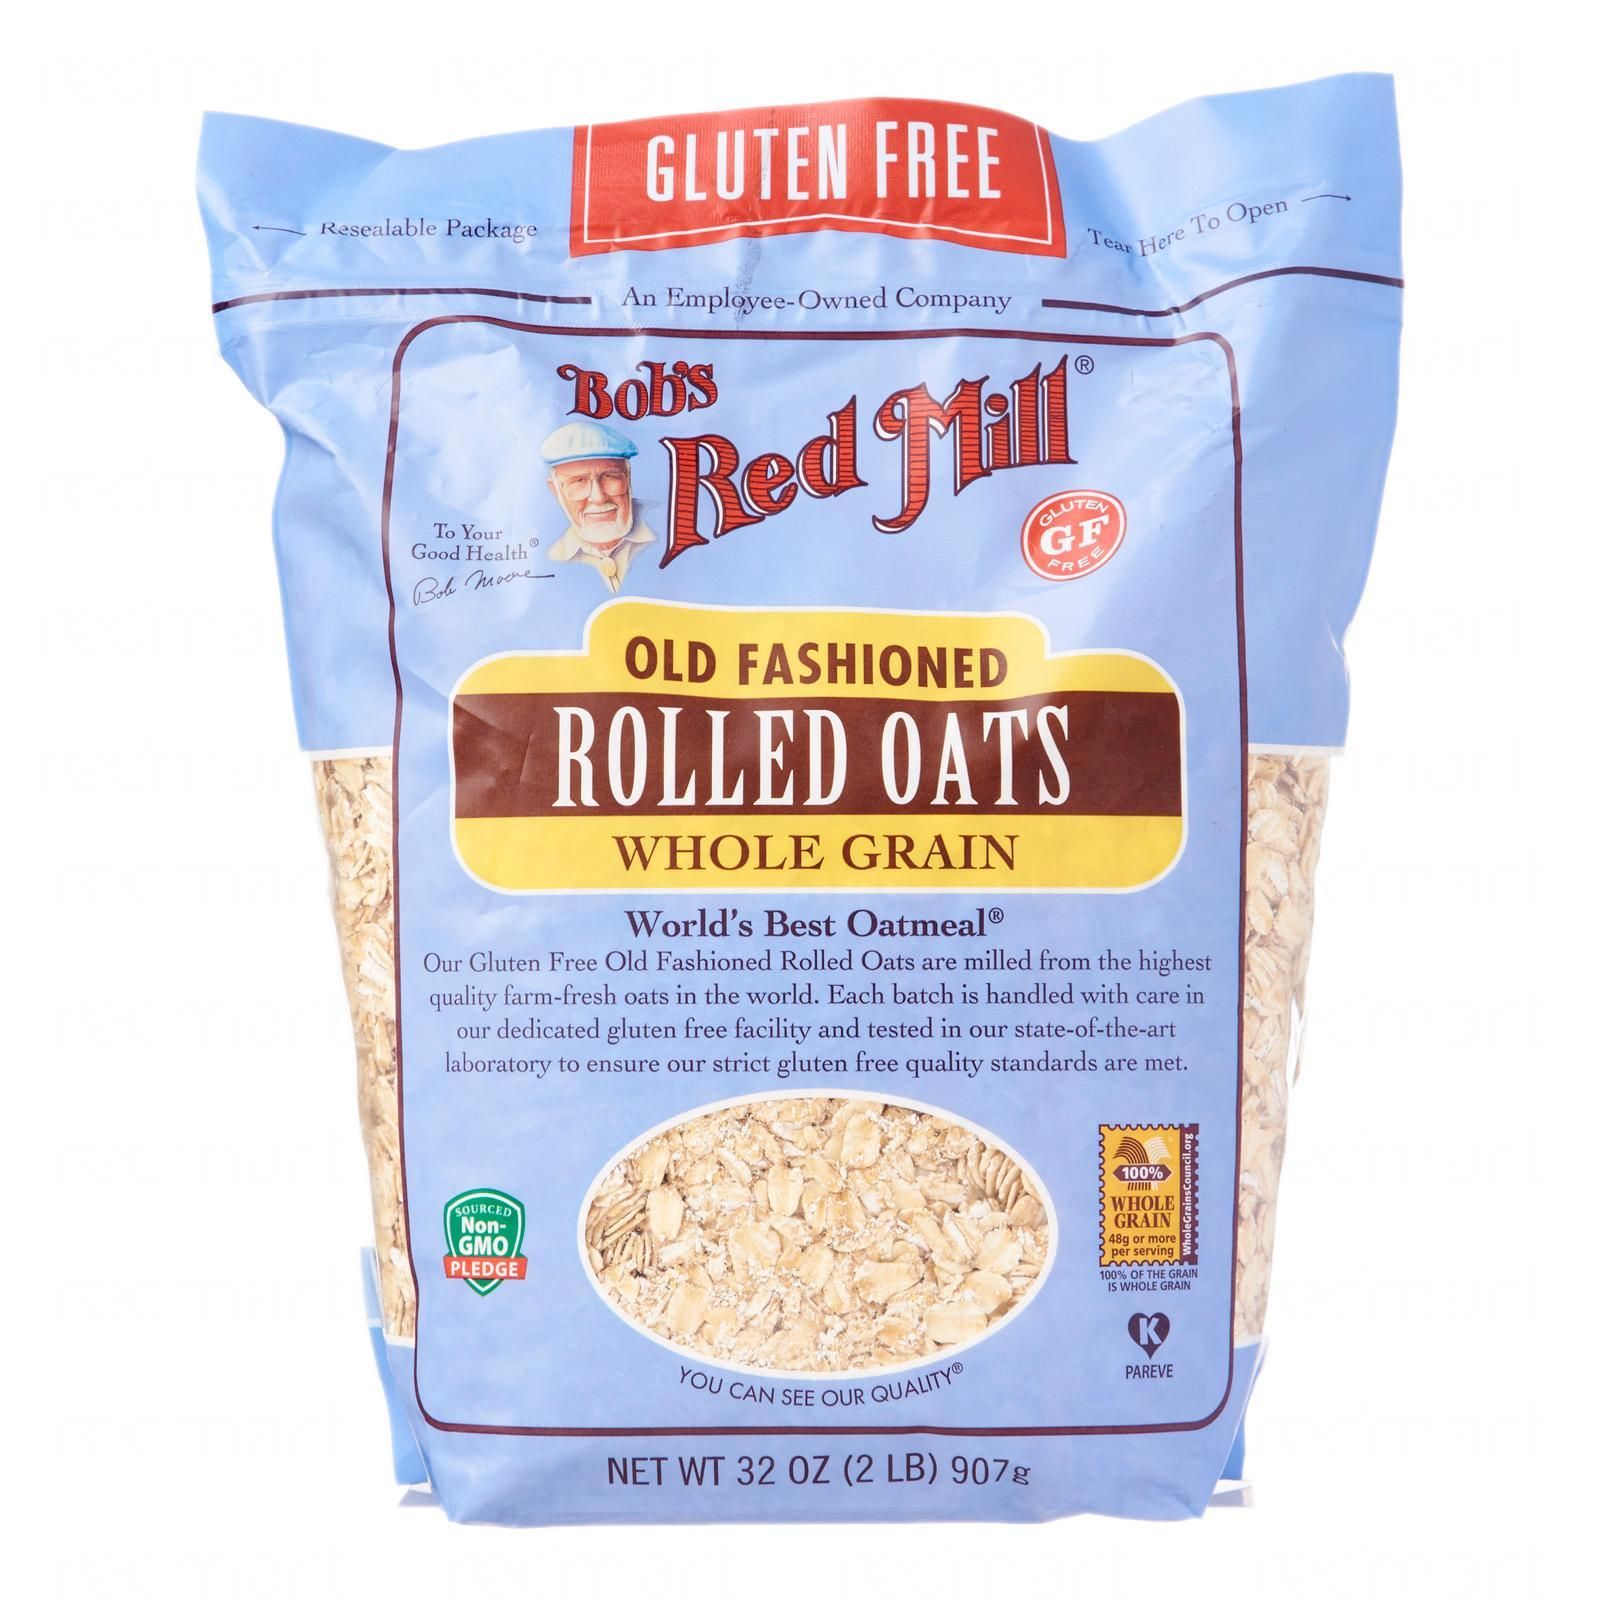 Bob's Red Mill Gluten Free Whole Grain Old Fashioned Rolled Oats